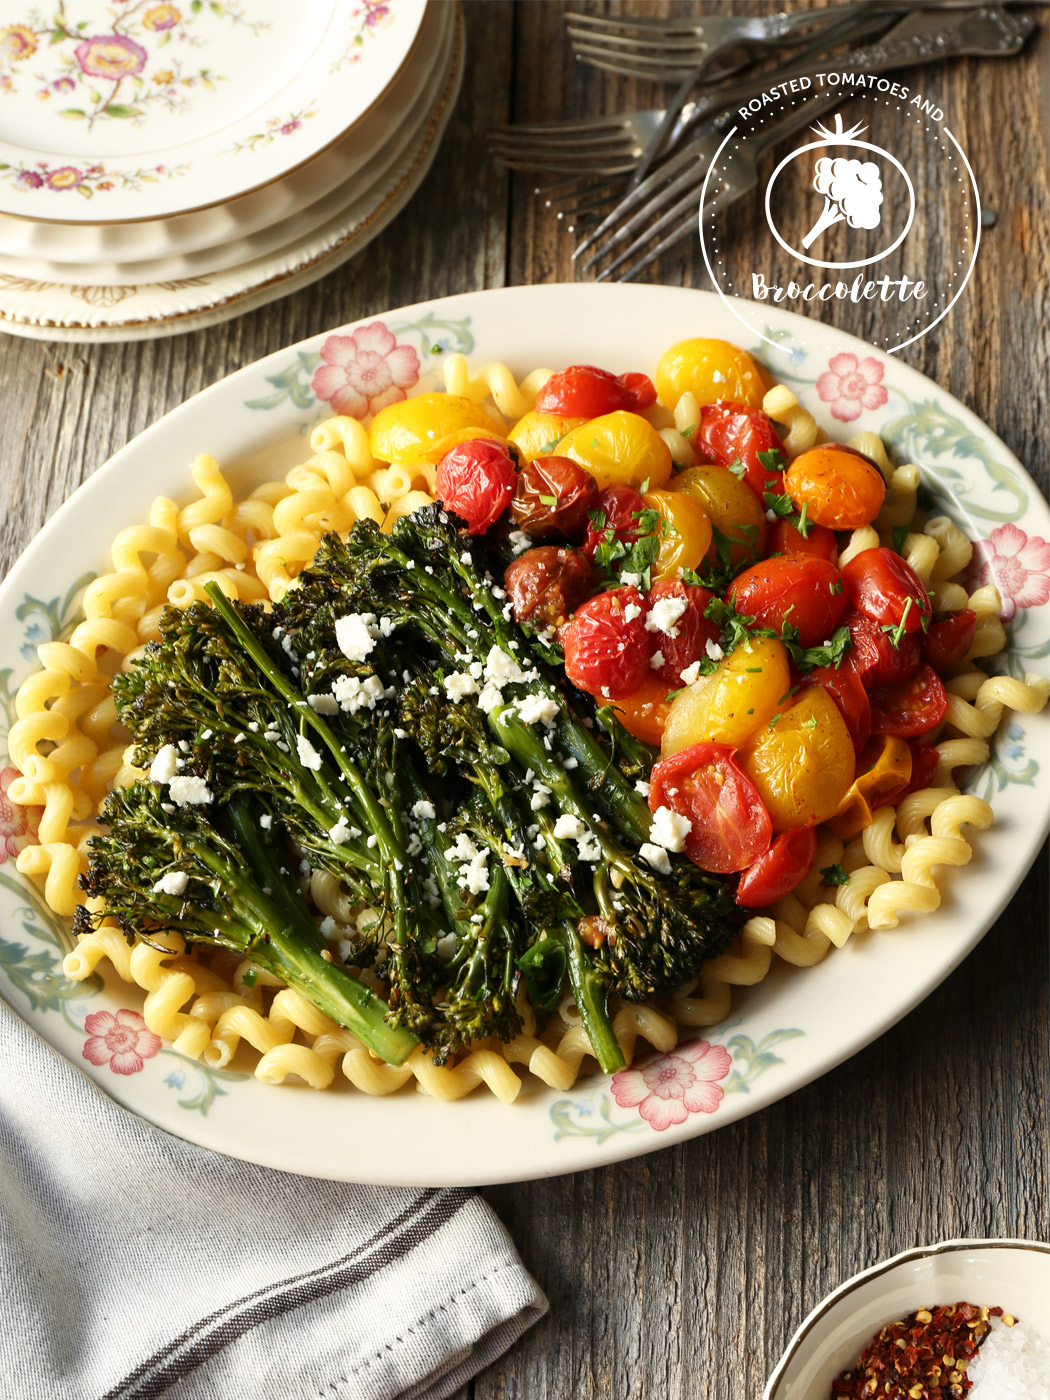 Roasted Tomatoes and Broccolette on a Bed of Pasta